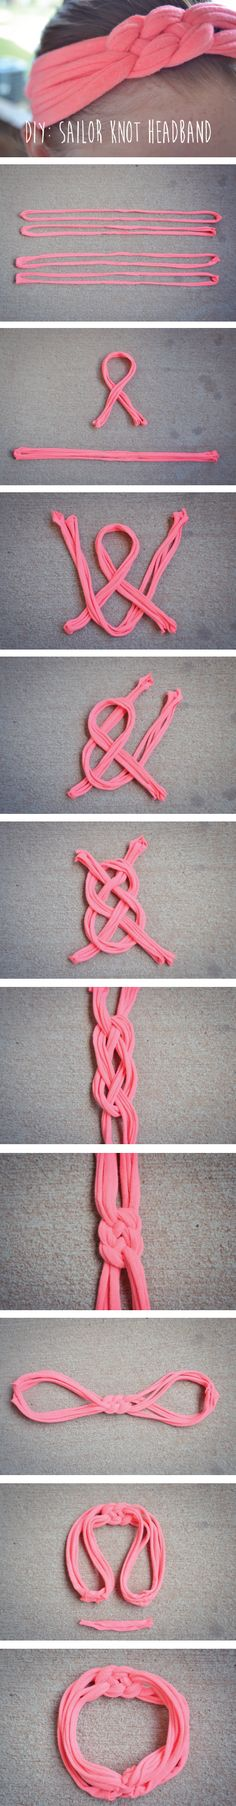 http://dailydorius.blogspot.com/2014/06/diy-01-knotted-sailor-headband.html…